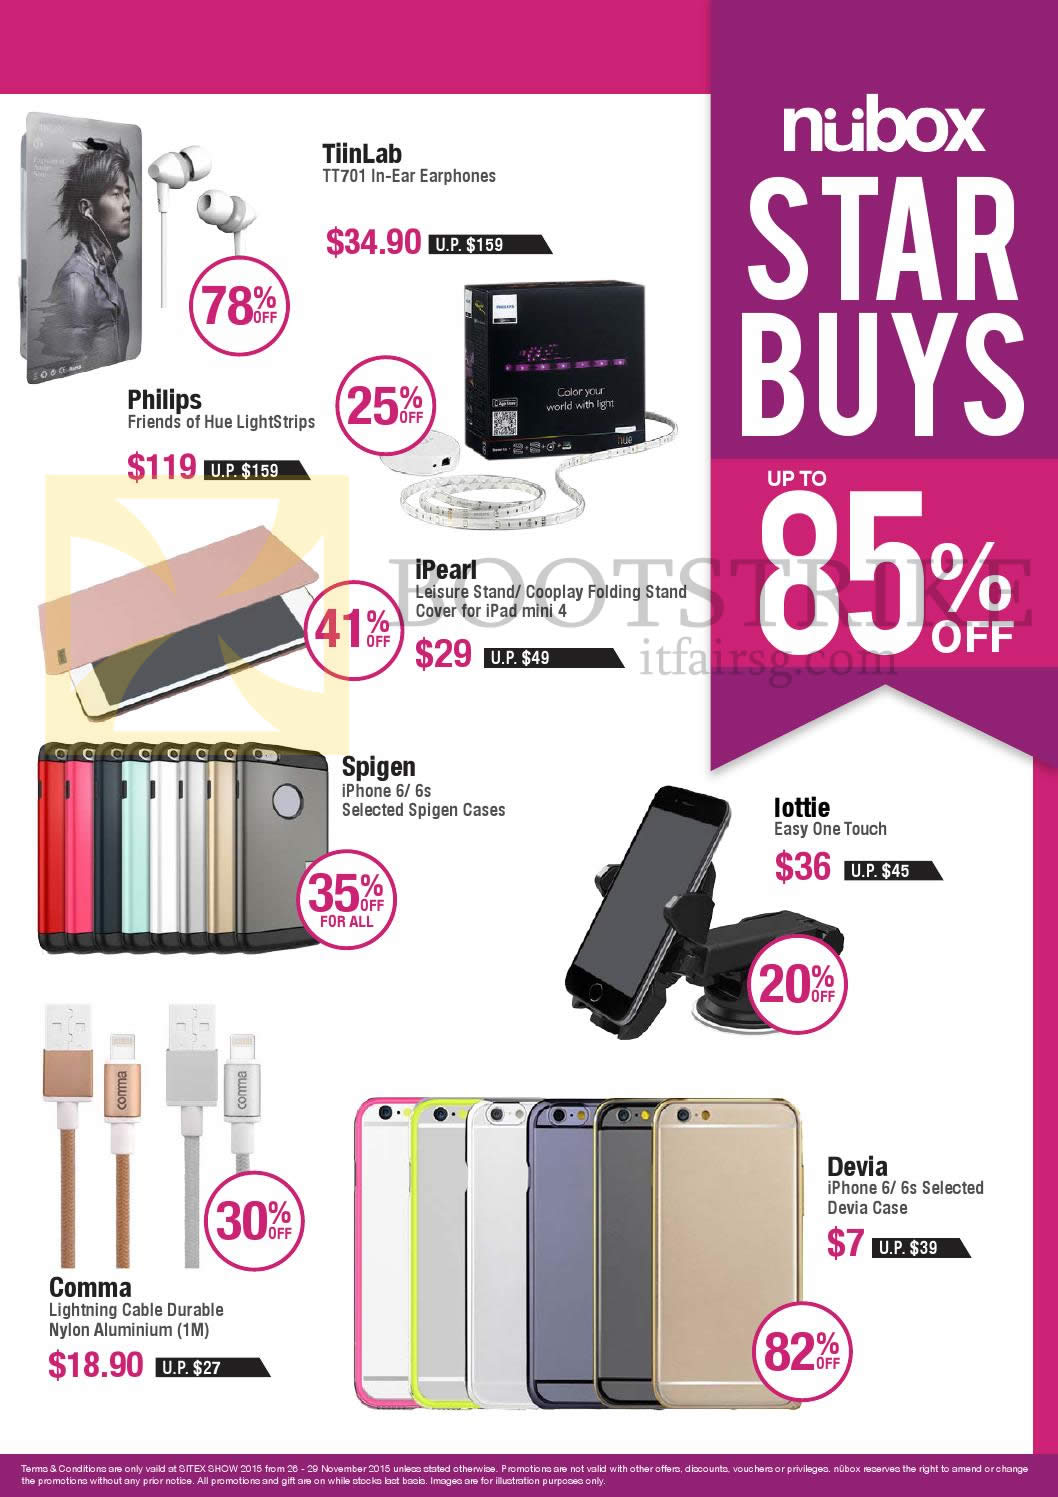 SITEX 2015 price list image brochure of Nubox Star Buys Up To 85 Percent Off Earphones, Cases, Lightning Cable, Easy ONe Touch, TiinLab, Philips, IPearl, Spigen, Lottle, Devia, Comma